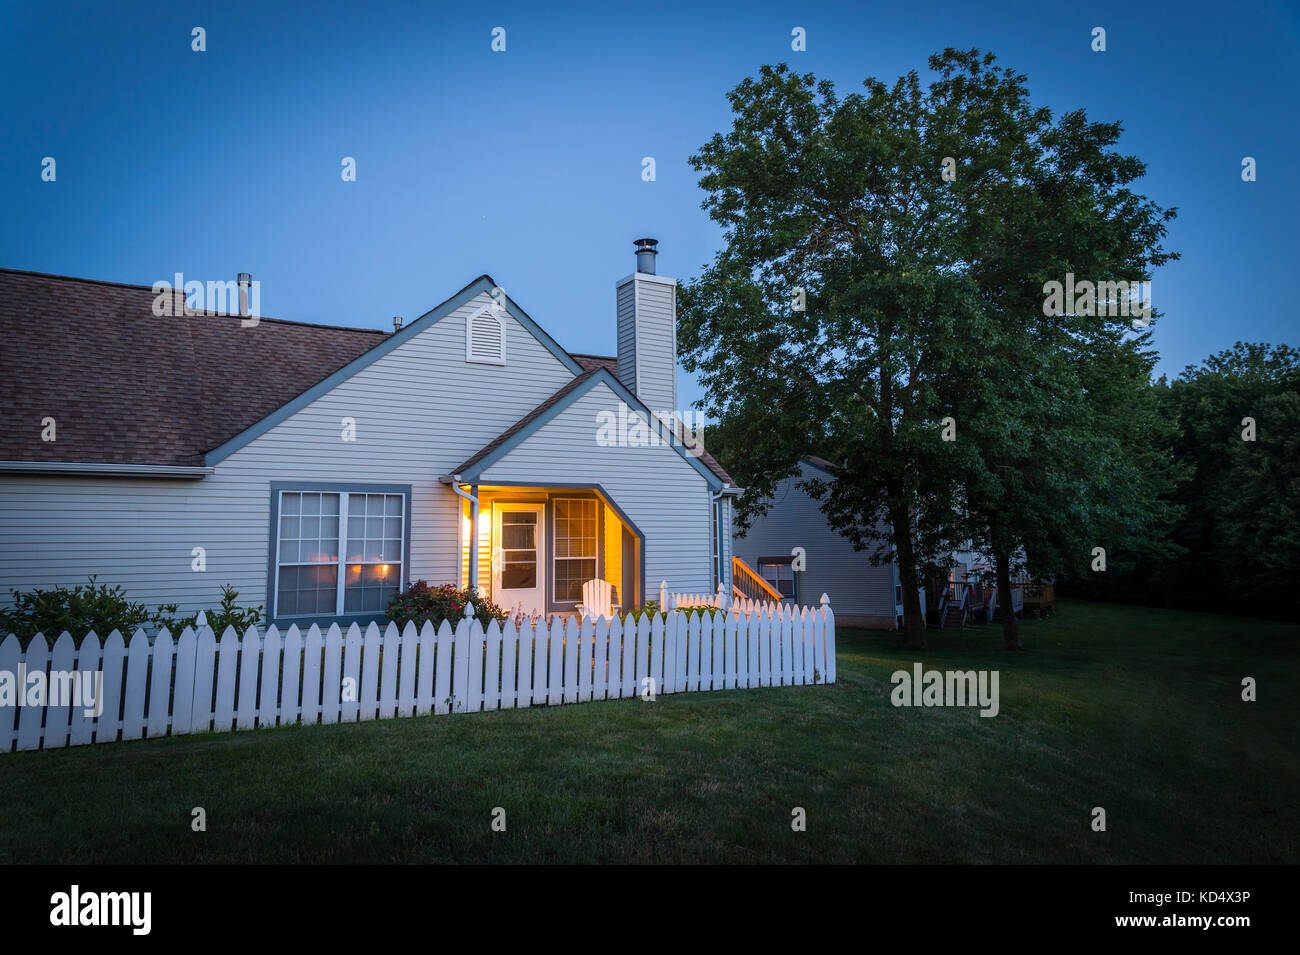 Warm Porch Light At Home On Late Summer Evening - Stock Image